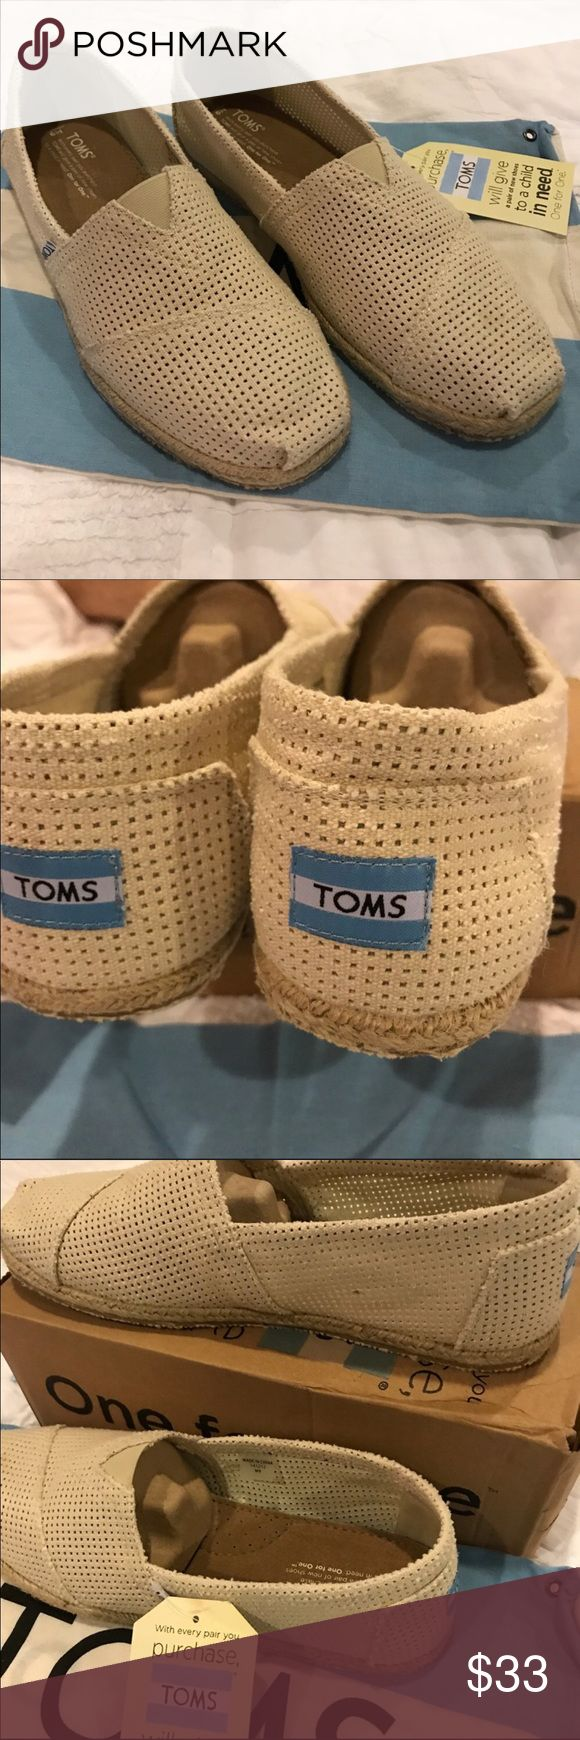 Toms Classics, Natural Freetown, Mens.New in Box Toms Classics, Natural Freetown, Mens.   New in box Toms Shoes